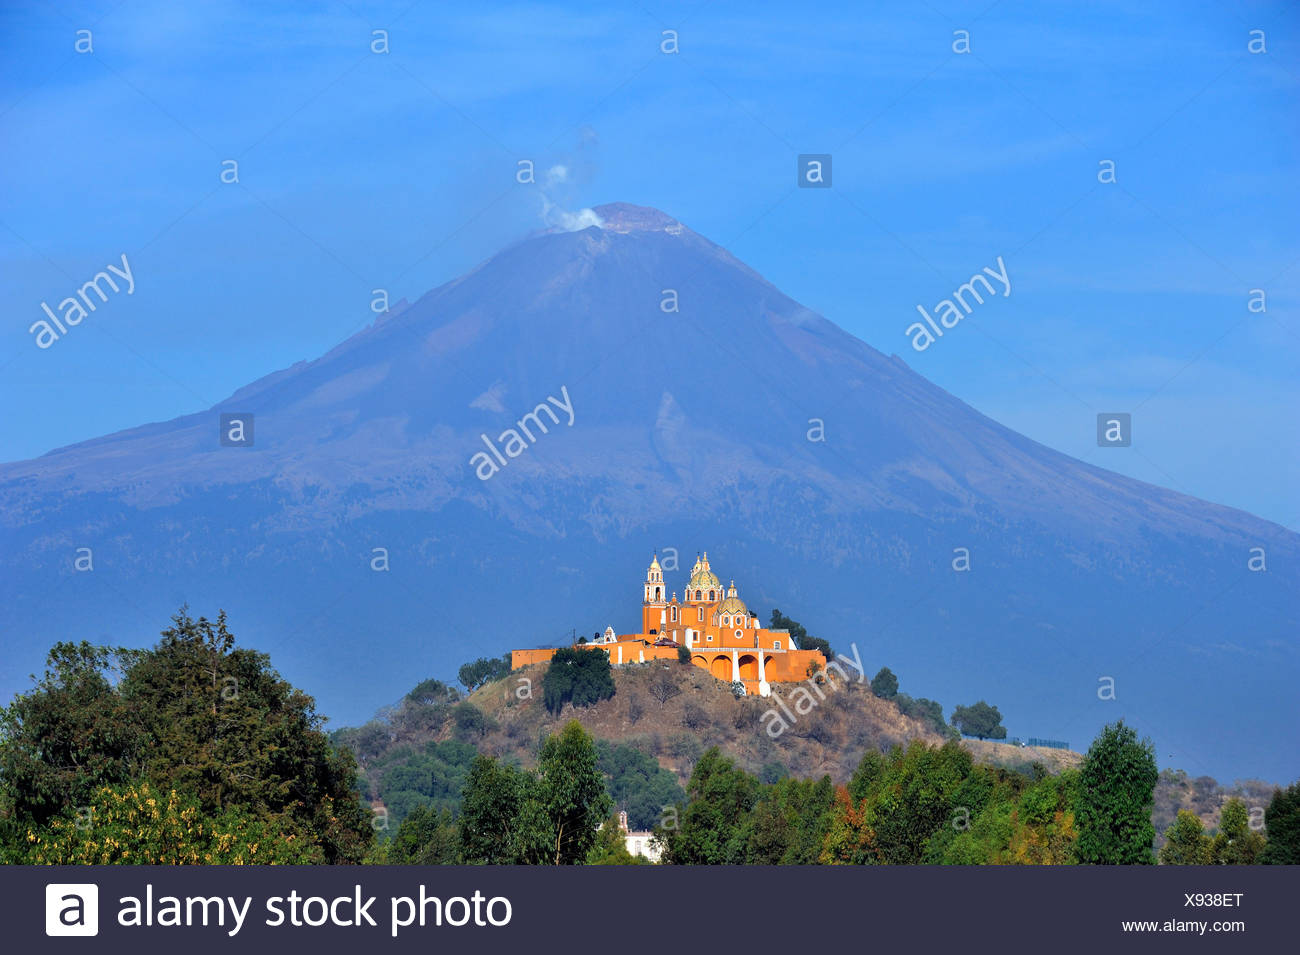 Church of Iglesia Nuestra Senora de los Remedios on the ruins of the pre-Hispanic Pyramid of Cholula in front of the active - Stock Image